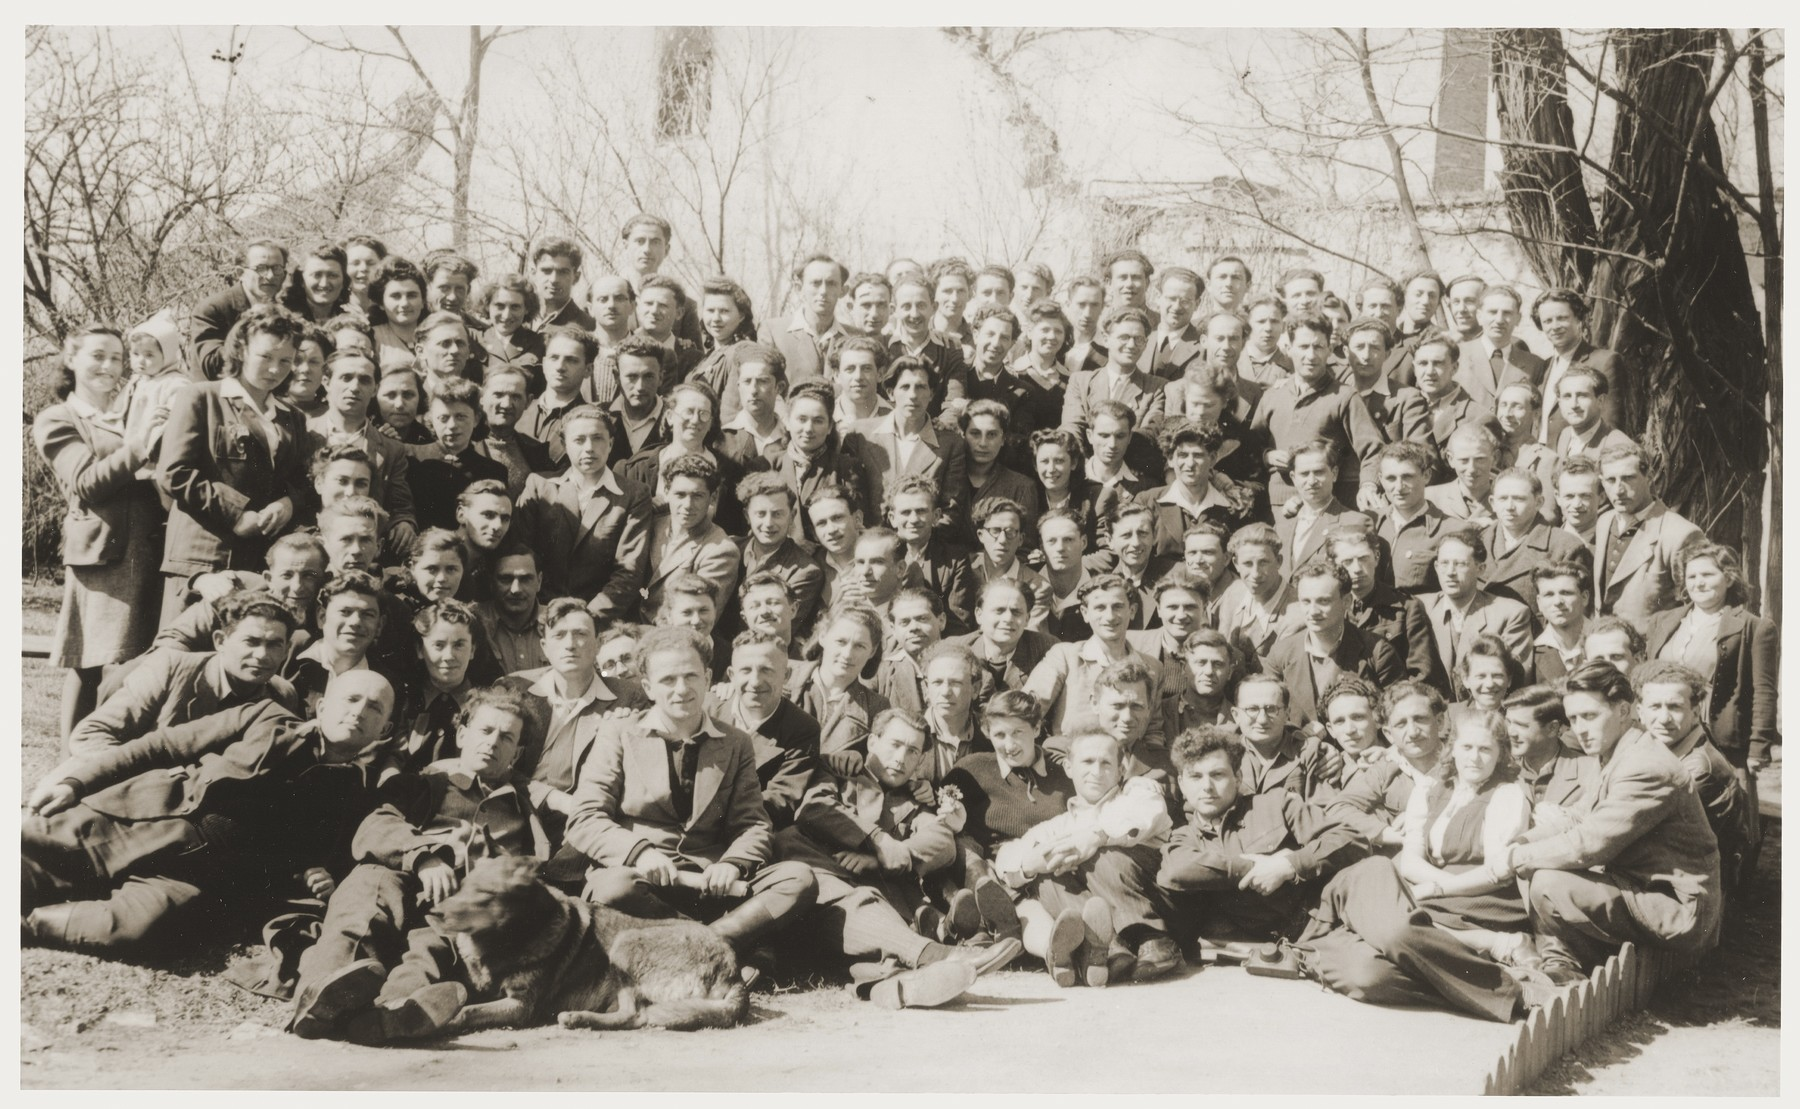 Group portrait of the members of the Kibbutz Nili hachshara (Zionist collective) in Pleikershof, Germany.